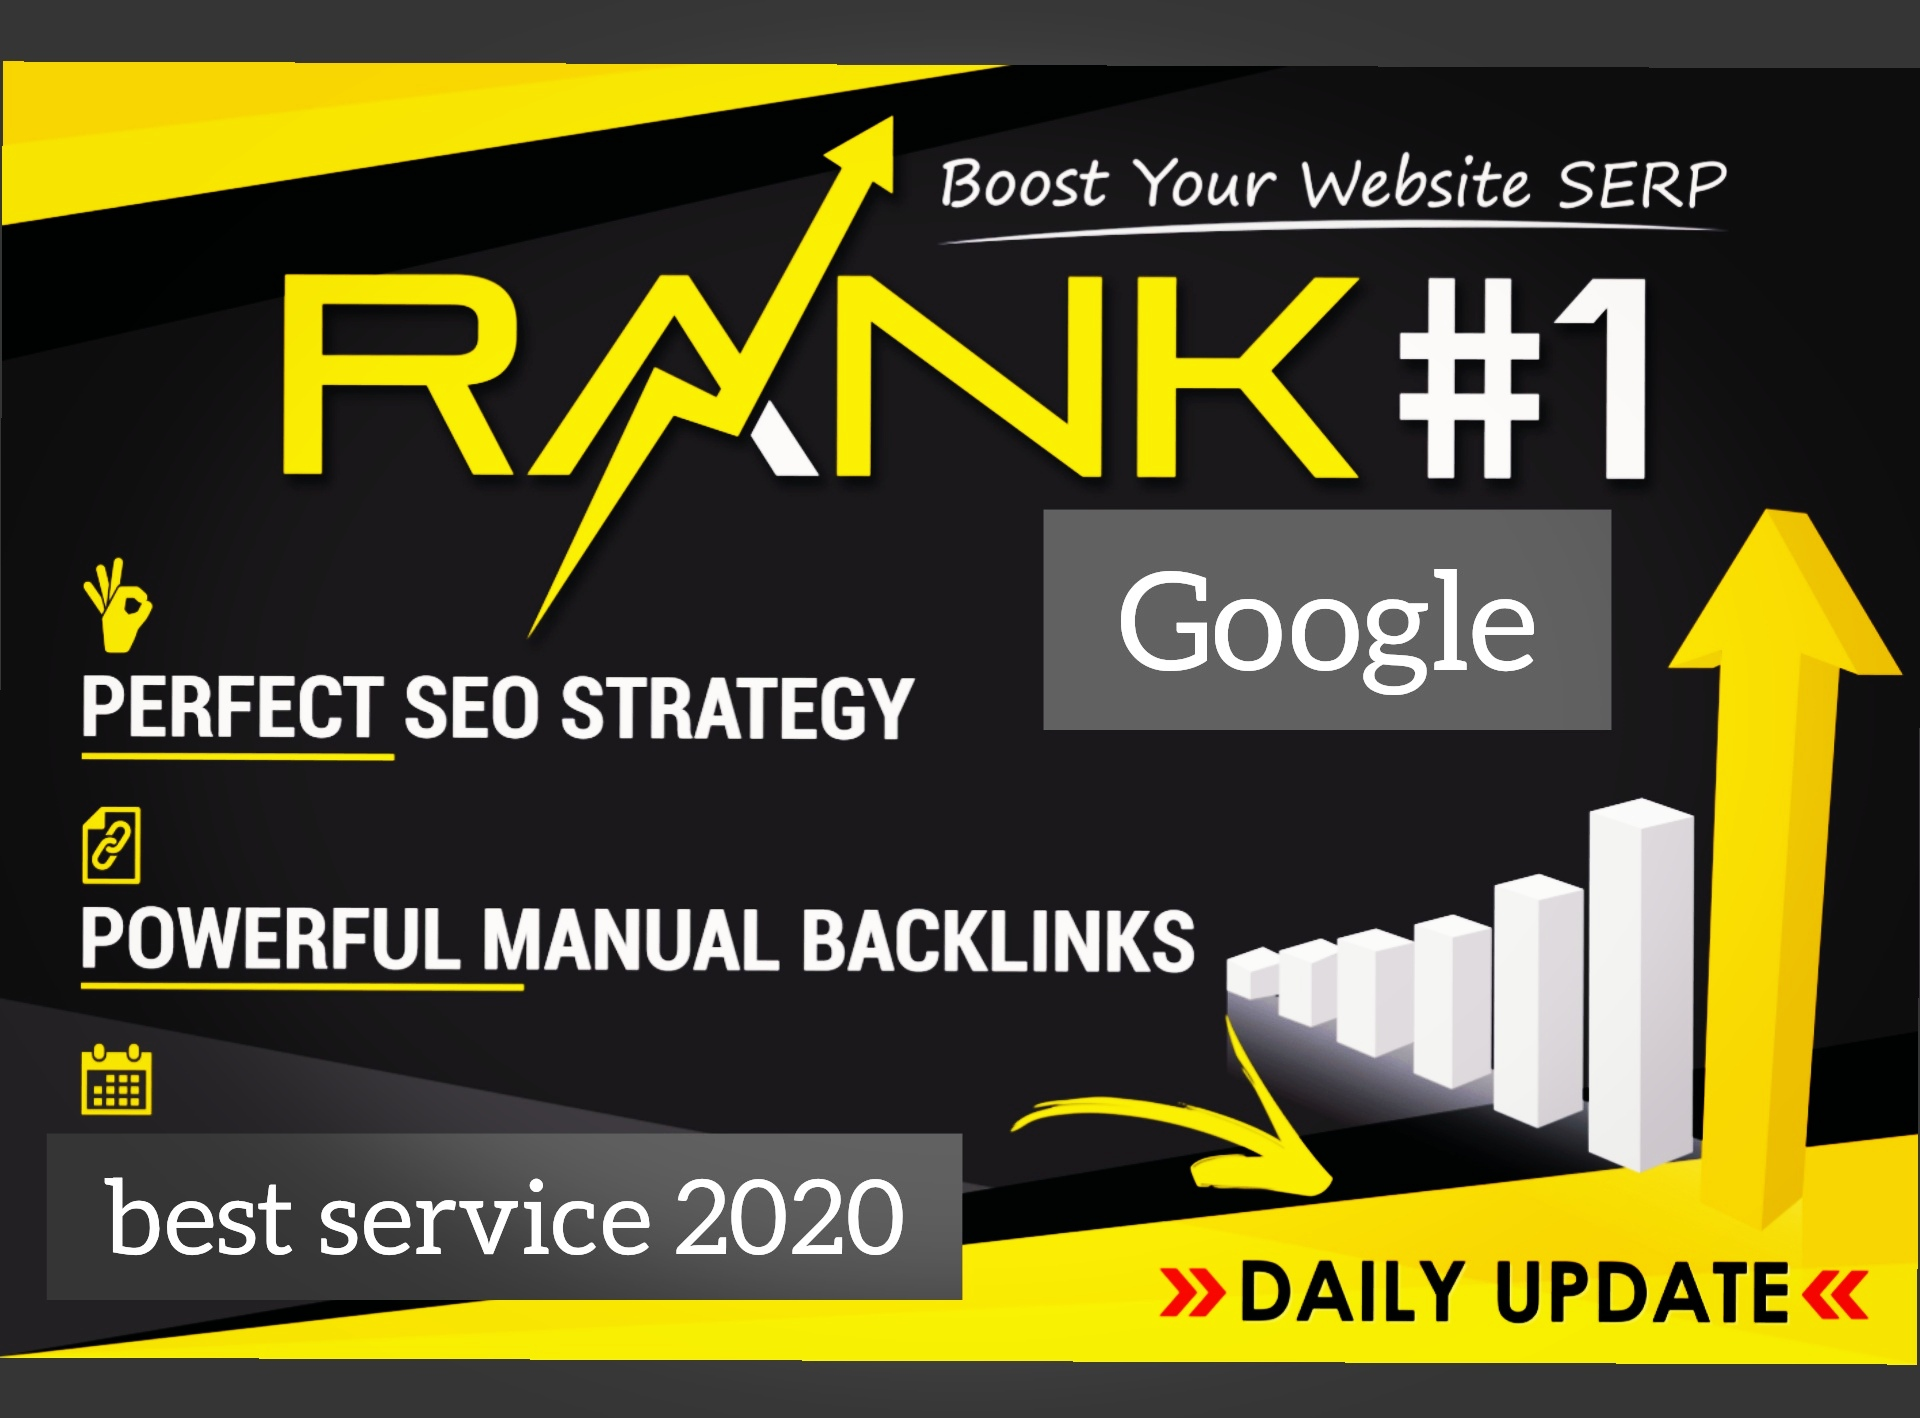 Exclusive 15 backlinks boost your Domain